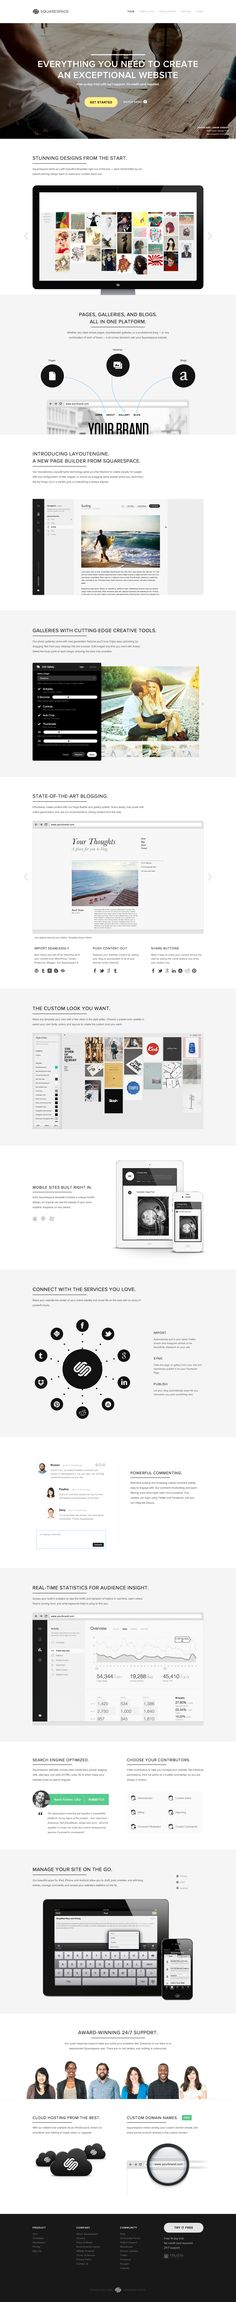 Squarespace new site. This platform in general is really great.